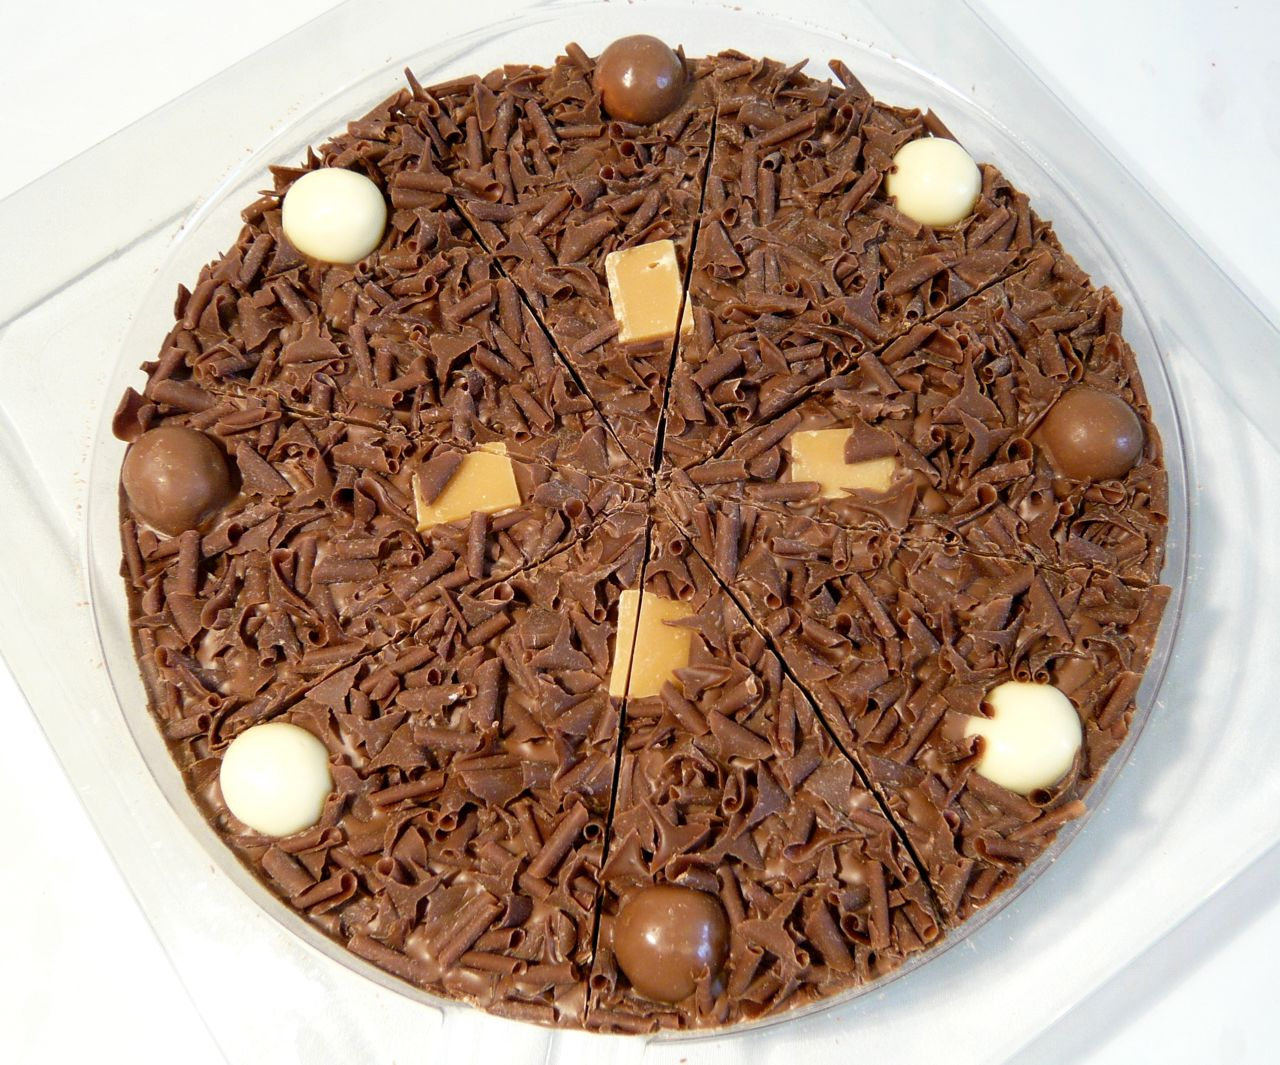 INSTA-REVIEW: The Gourmet Chocolate Pizza Co – One Treat ...